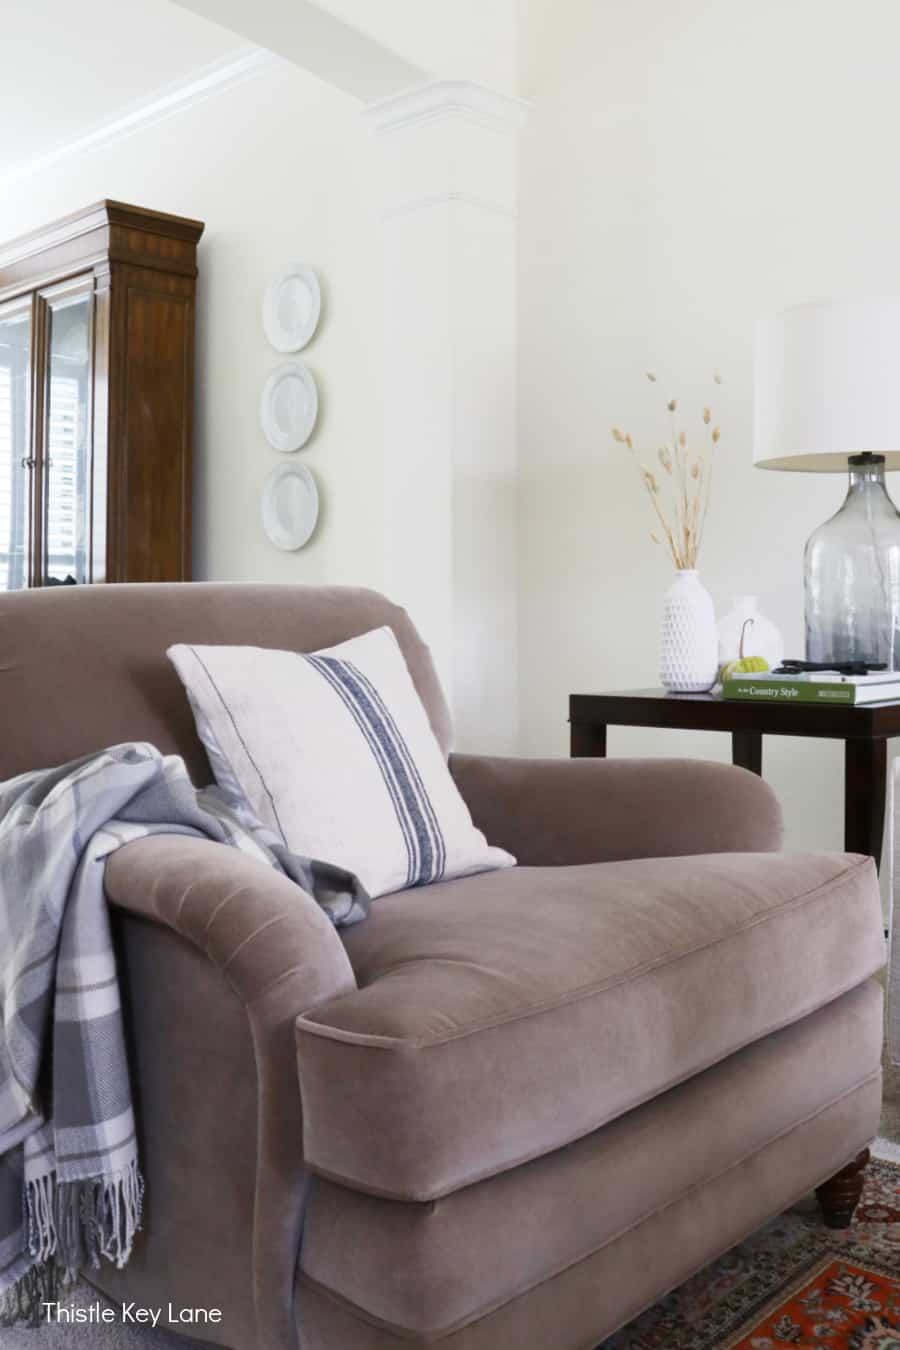 Taupe velvet chair with grain sack pillow and a plaid throw.